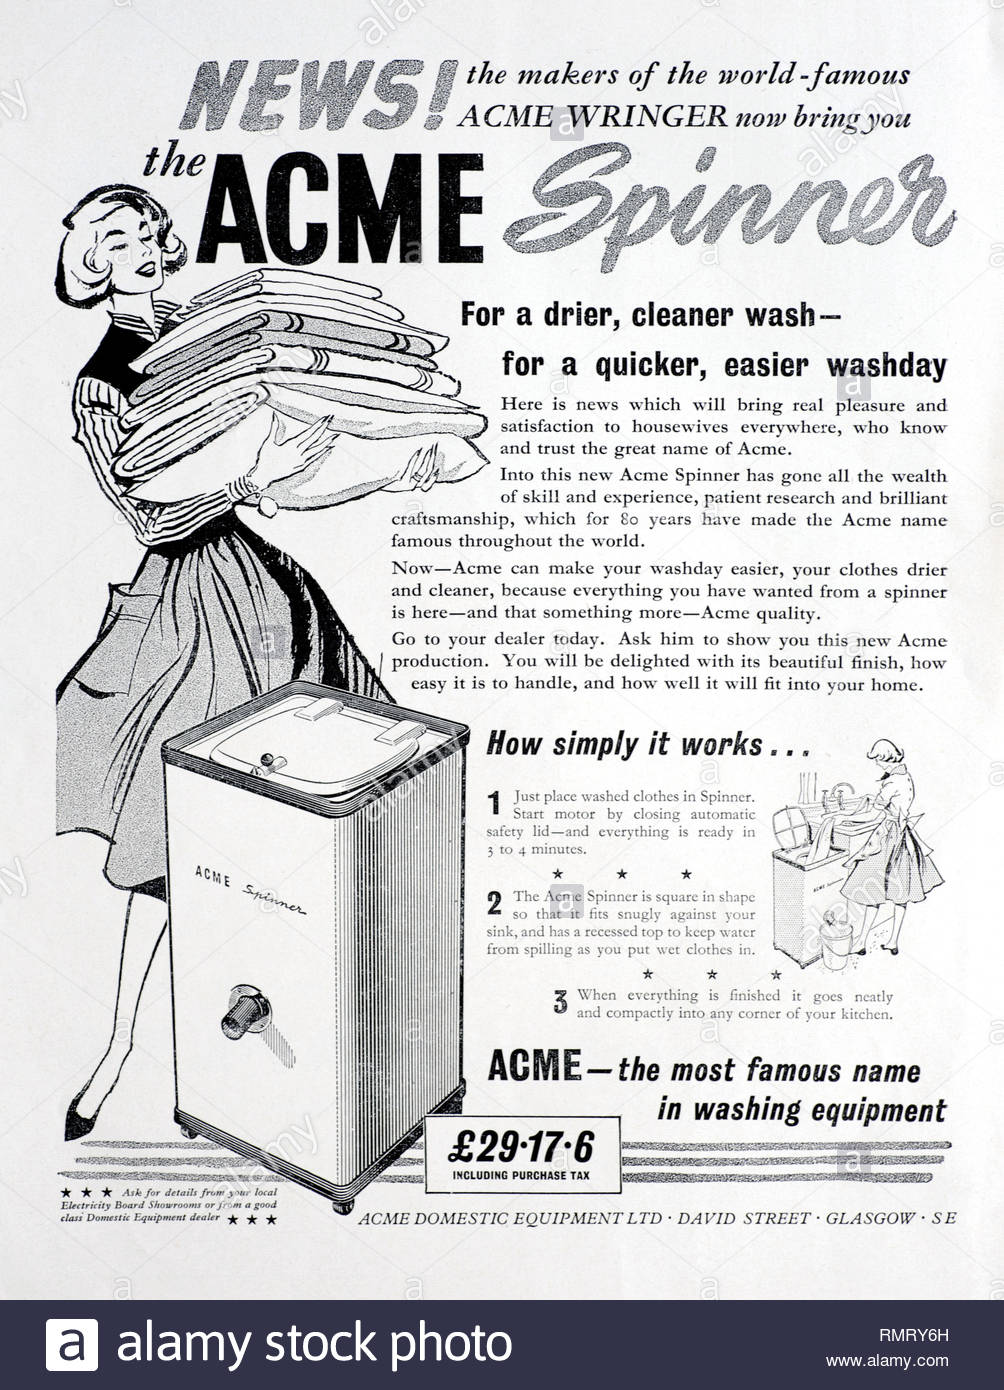 ACME Spinner vintage advertising 1959 - Stock Image